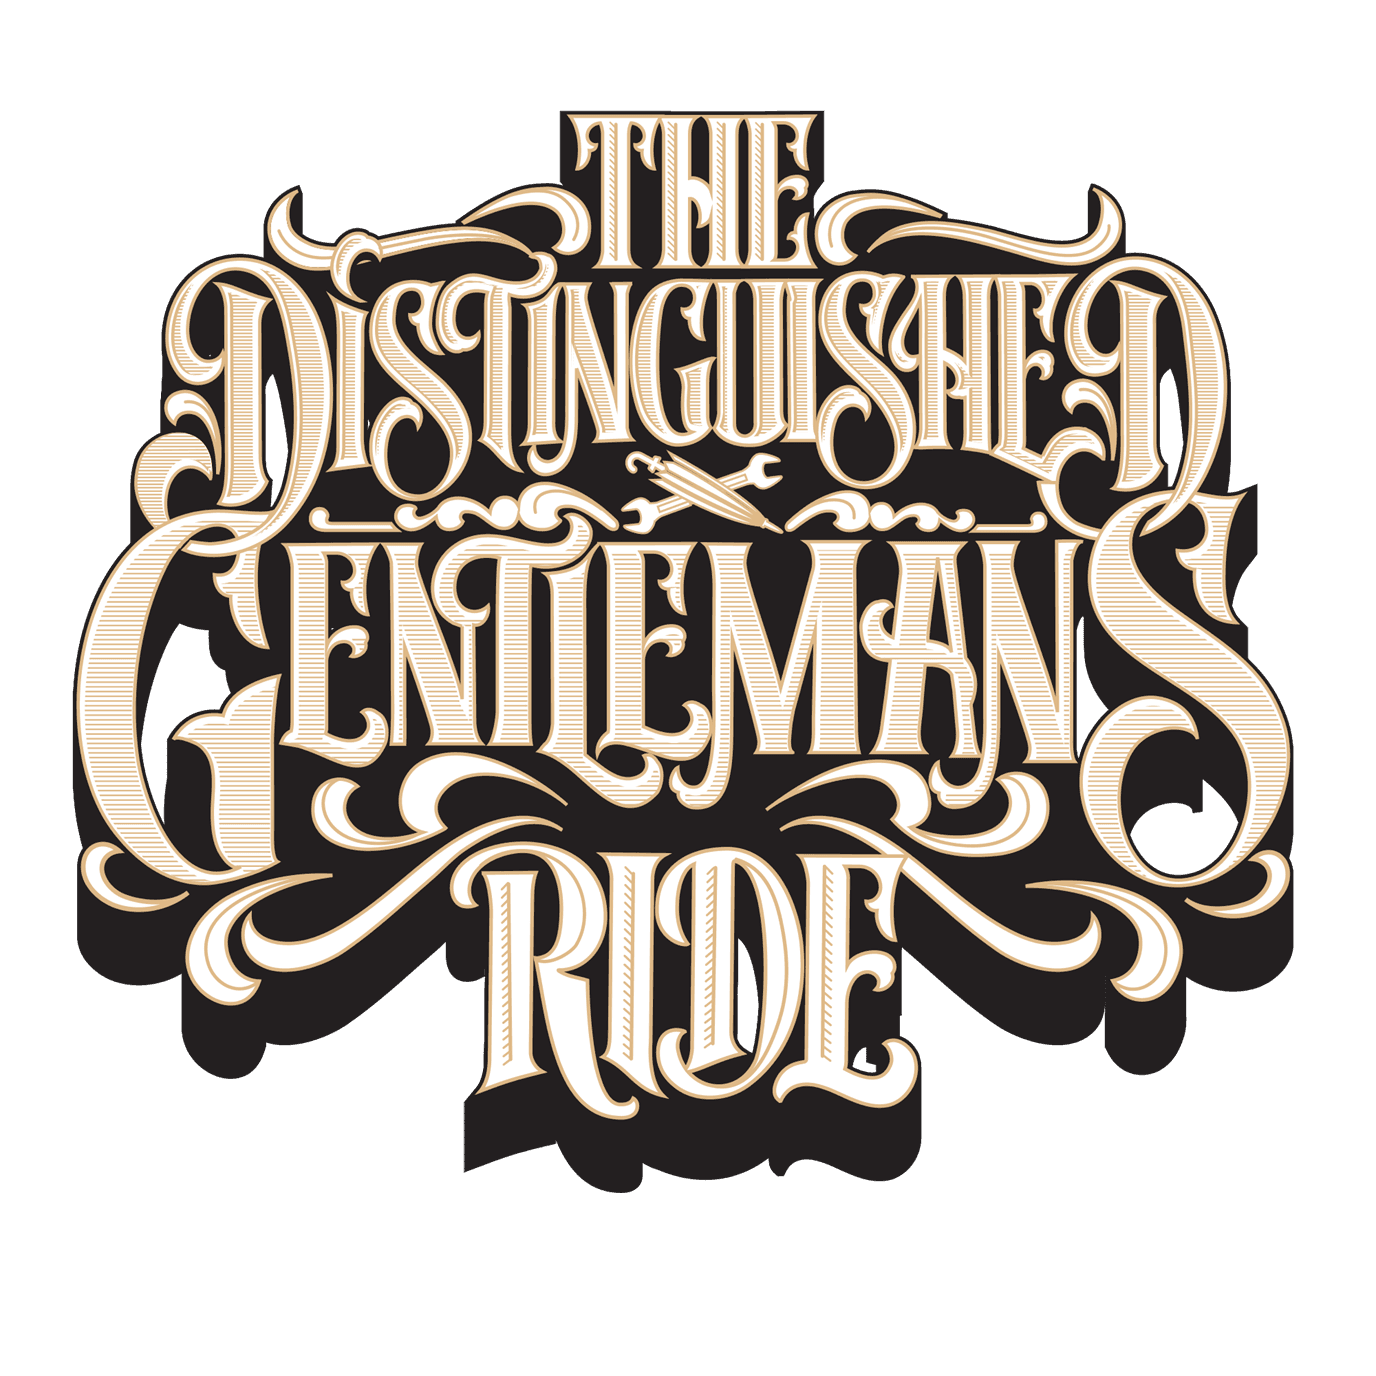 The 2016 Distinguished Gentlemans Ride